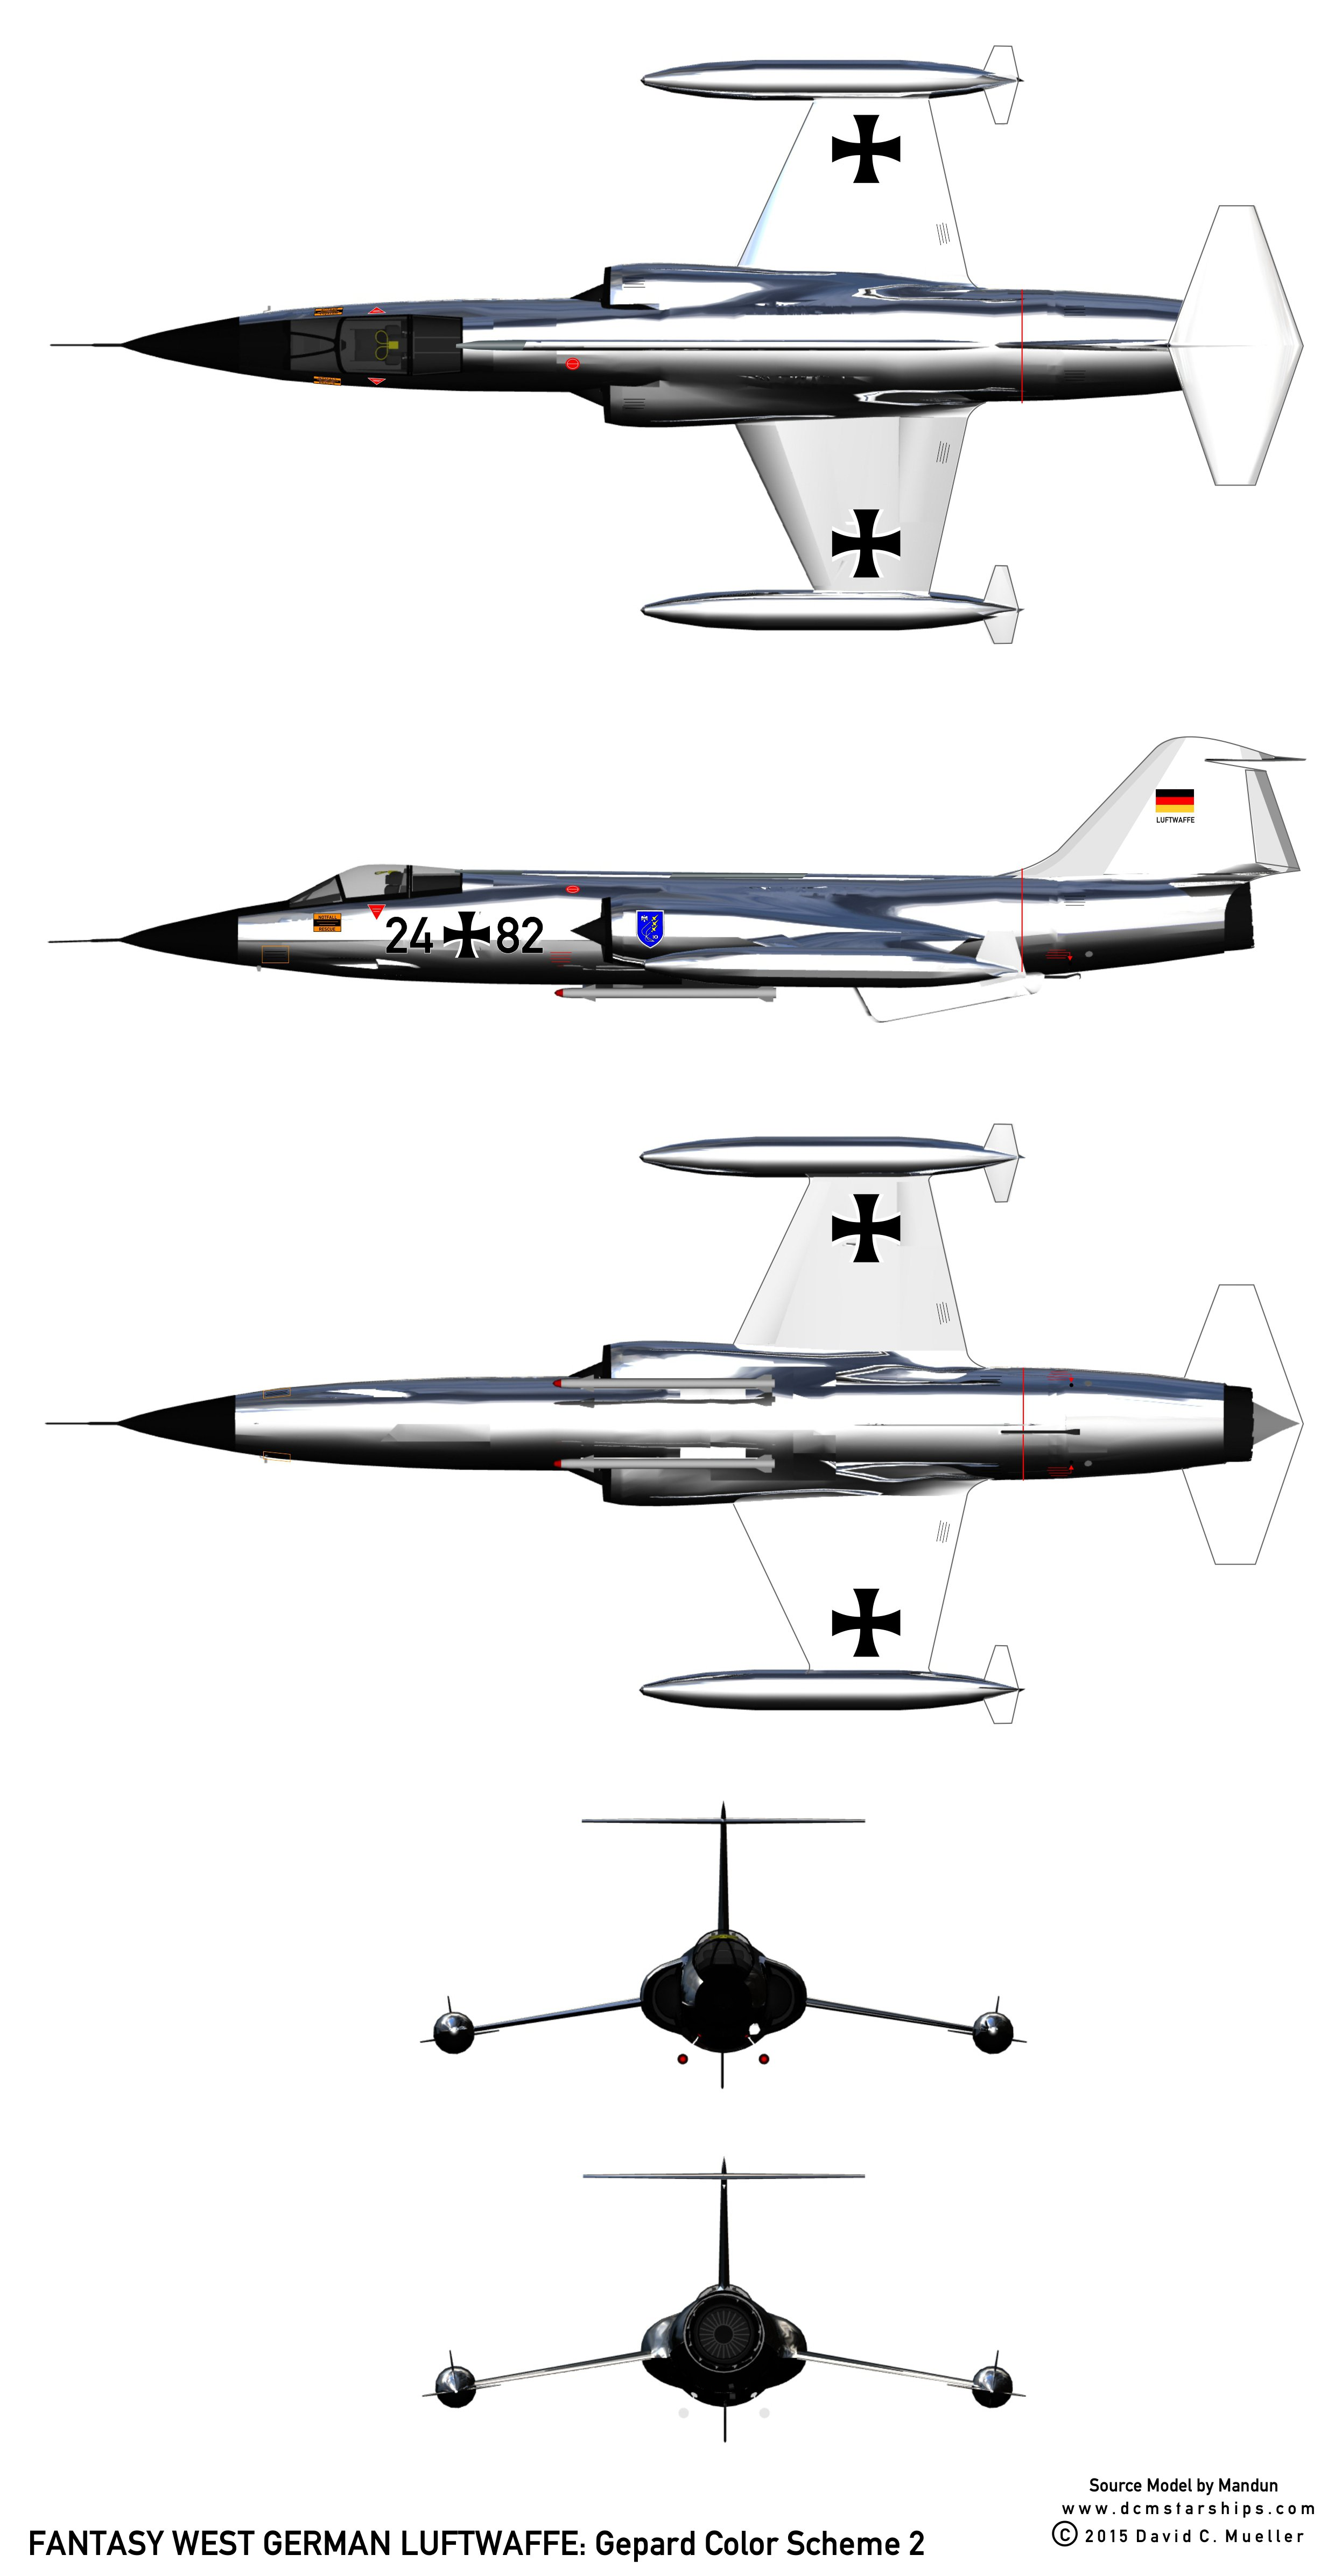 Fantasy Jet Planes Projects Science Fiction Art By David